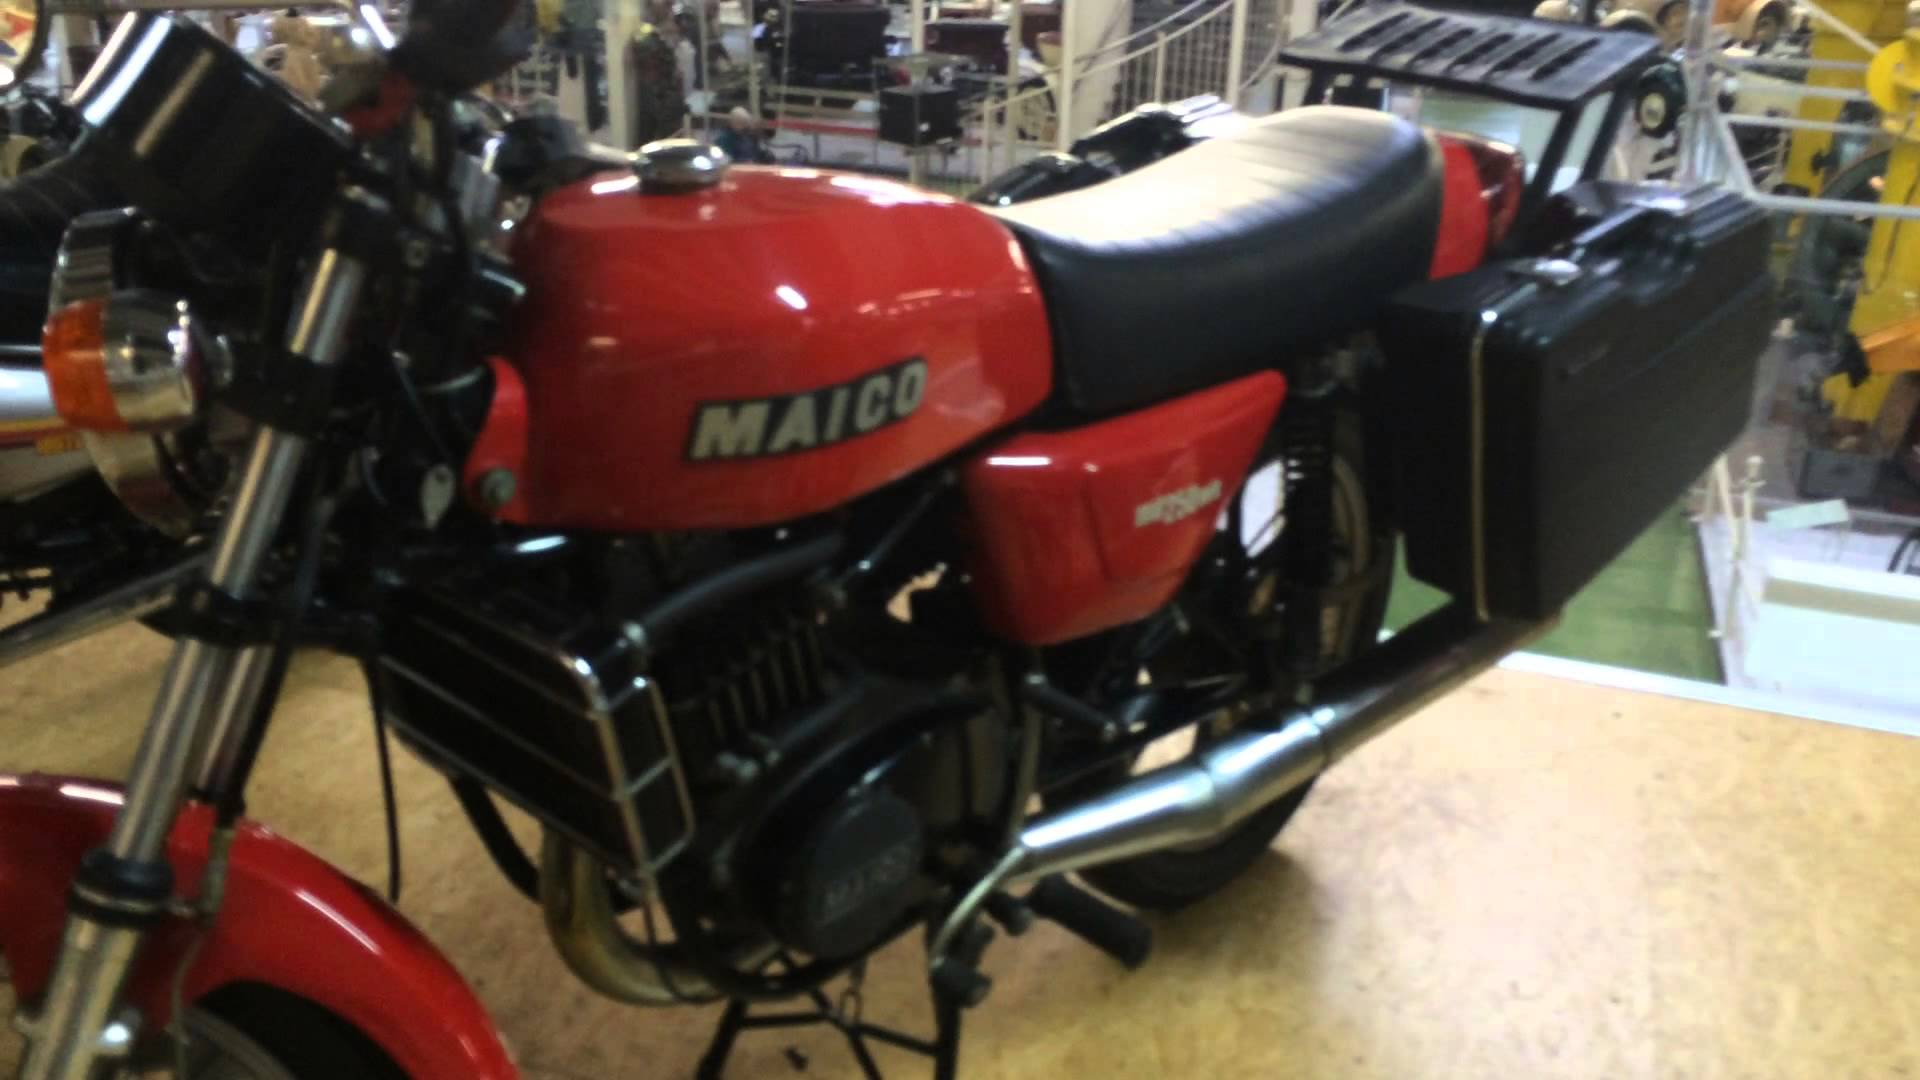 Maico MD 250 1971 images #102833